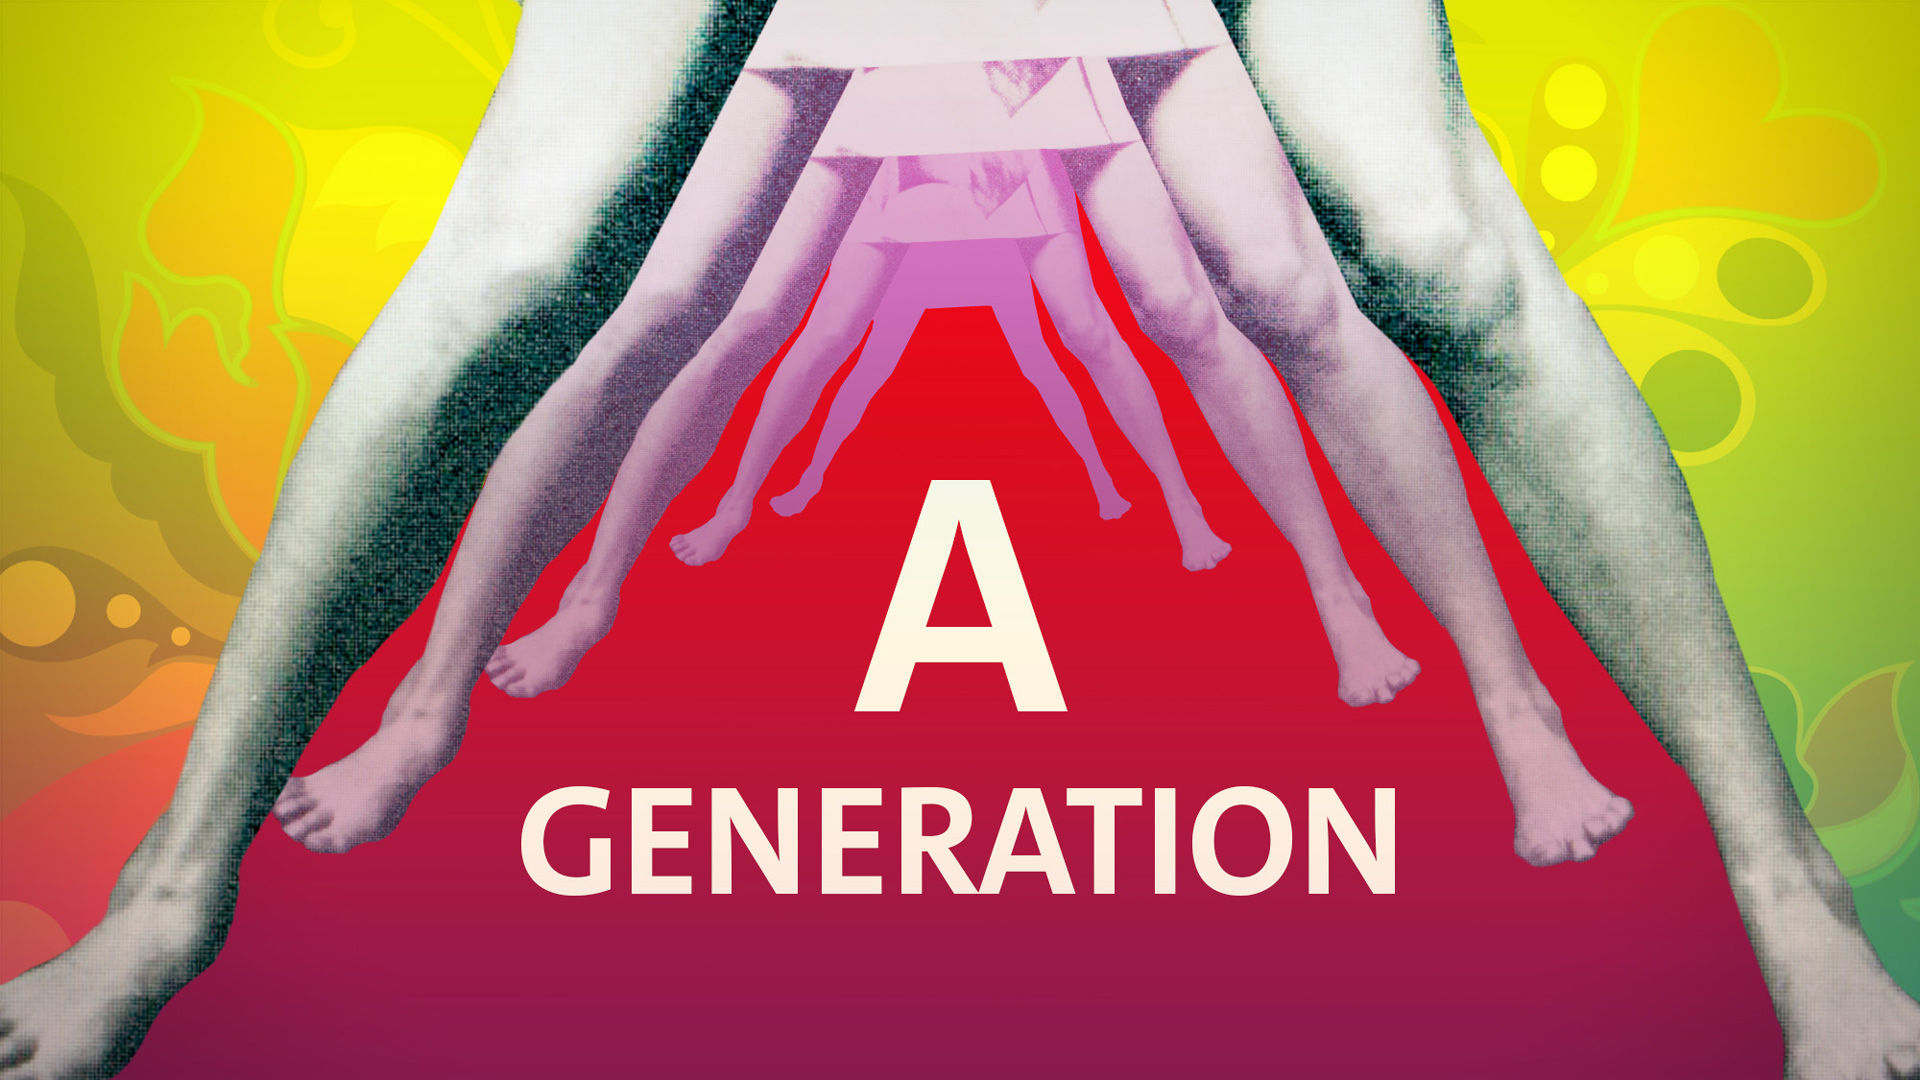 The V&A museum, Revolution exhibition, motion graphics design, london, 60's, sixties, records and rebels, roxanne silverwood